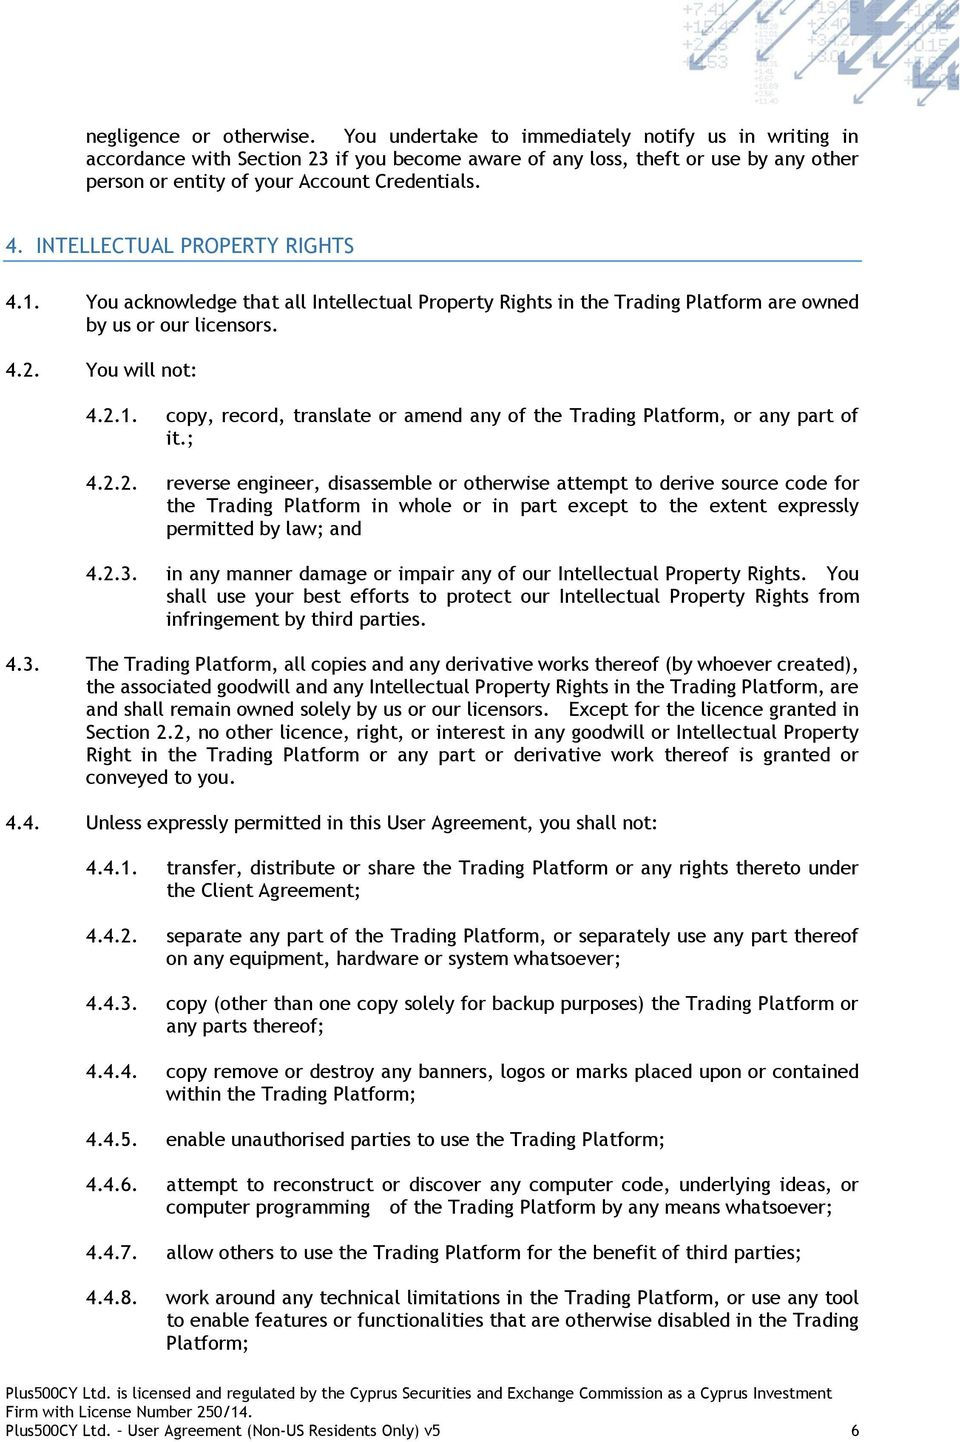 INTELLECTUAL PROPERTY RIGHTS 4.1. You acknowledge that all Intellectual Property Rights in the Trading Platform are owned by us or our licensors. 4.2. You will not: 4.2.1. copy, record, translate or amend any of the Trading Platform, or any part of it.